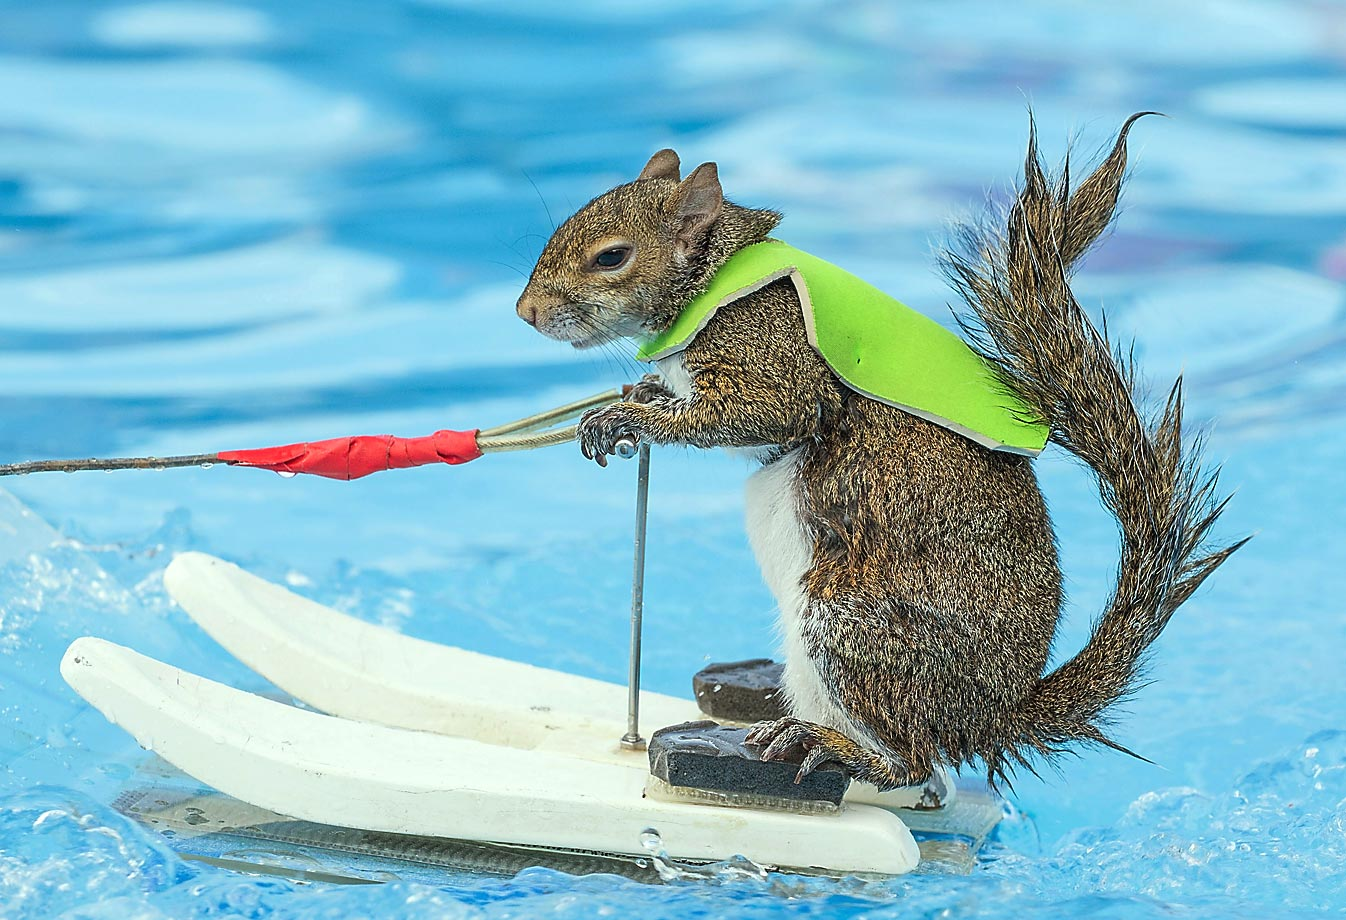 Twiggy the Water-Skiing Squirrel gives fans a thrill during X Games Austin on June 5 at Circuit of The Americas in Texas.